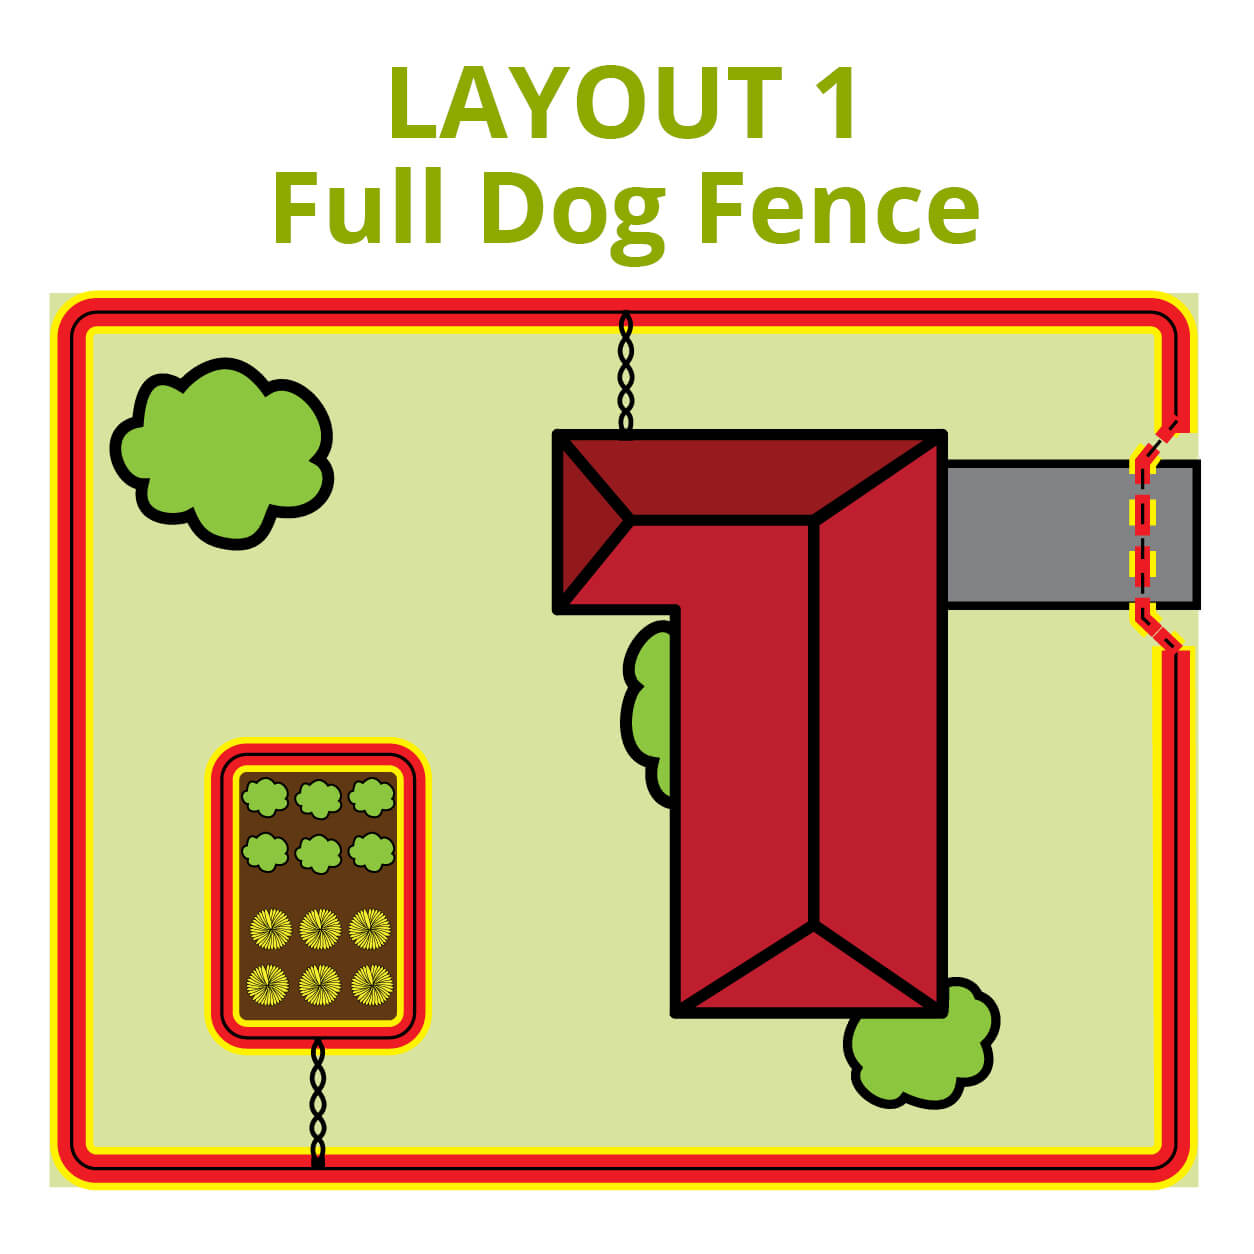 Dog Fence Whole Property Layout